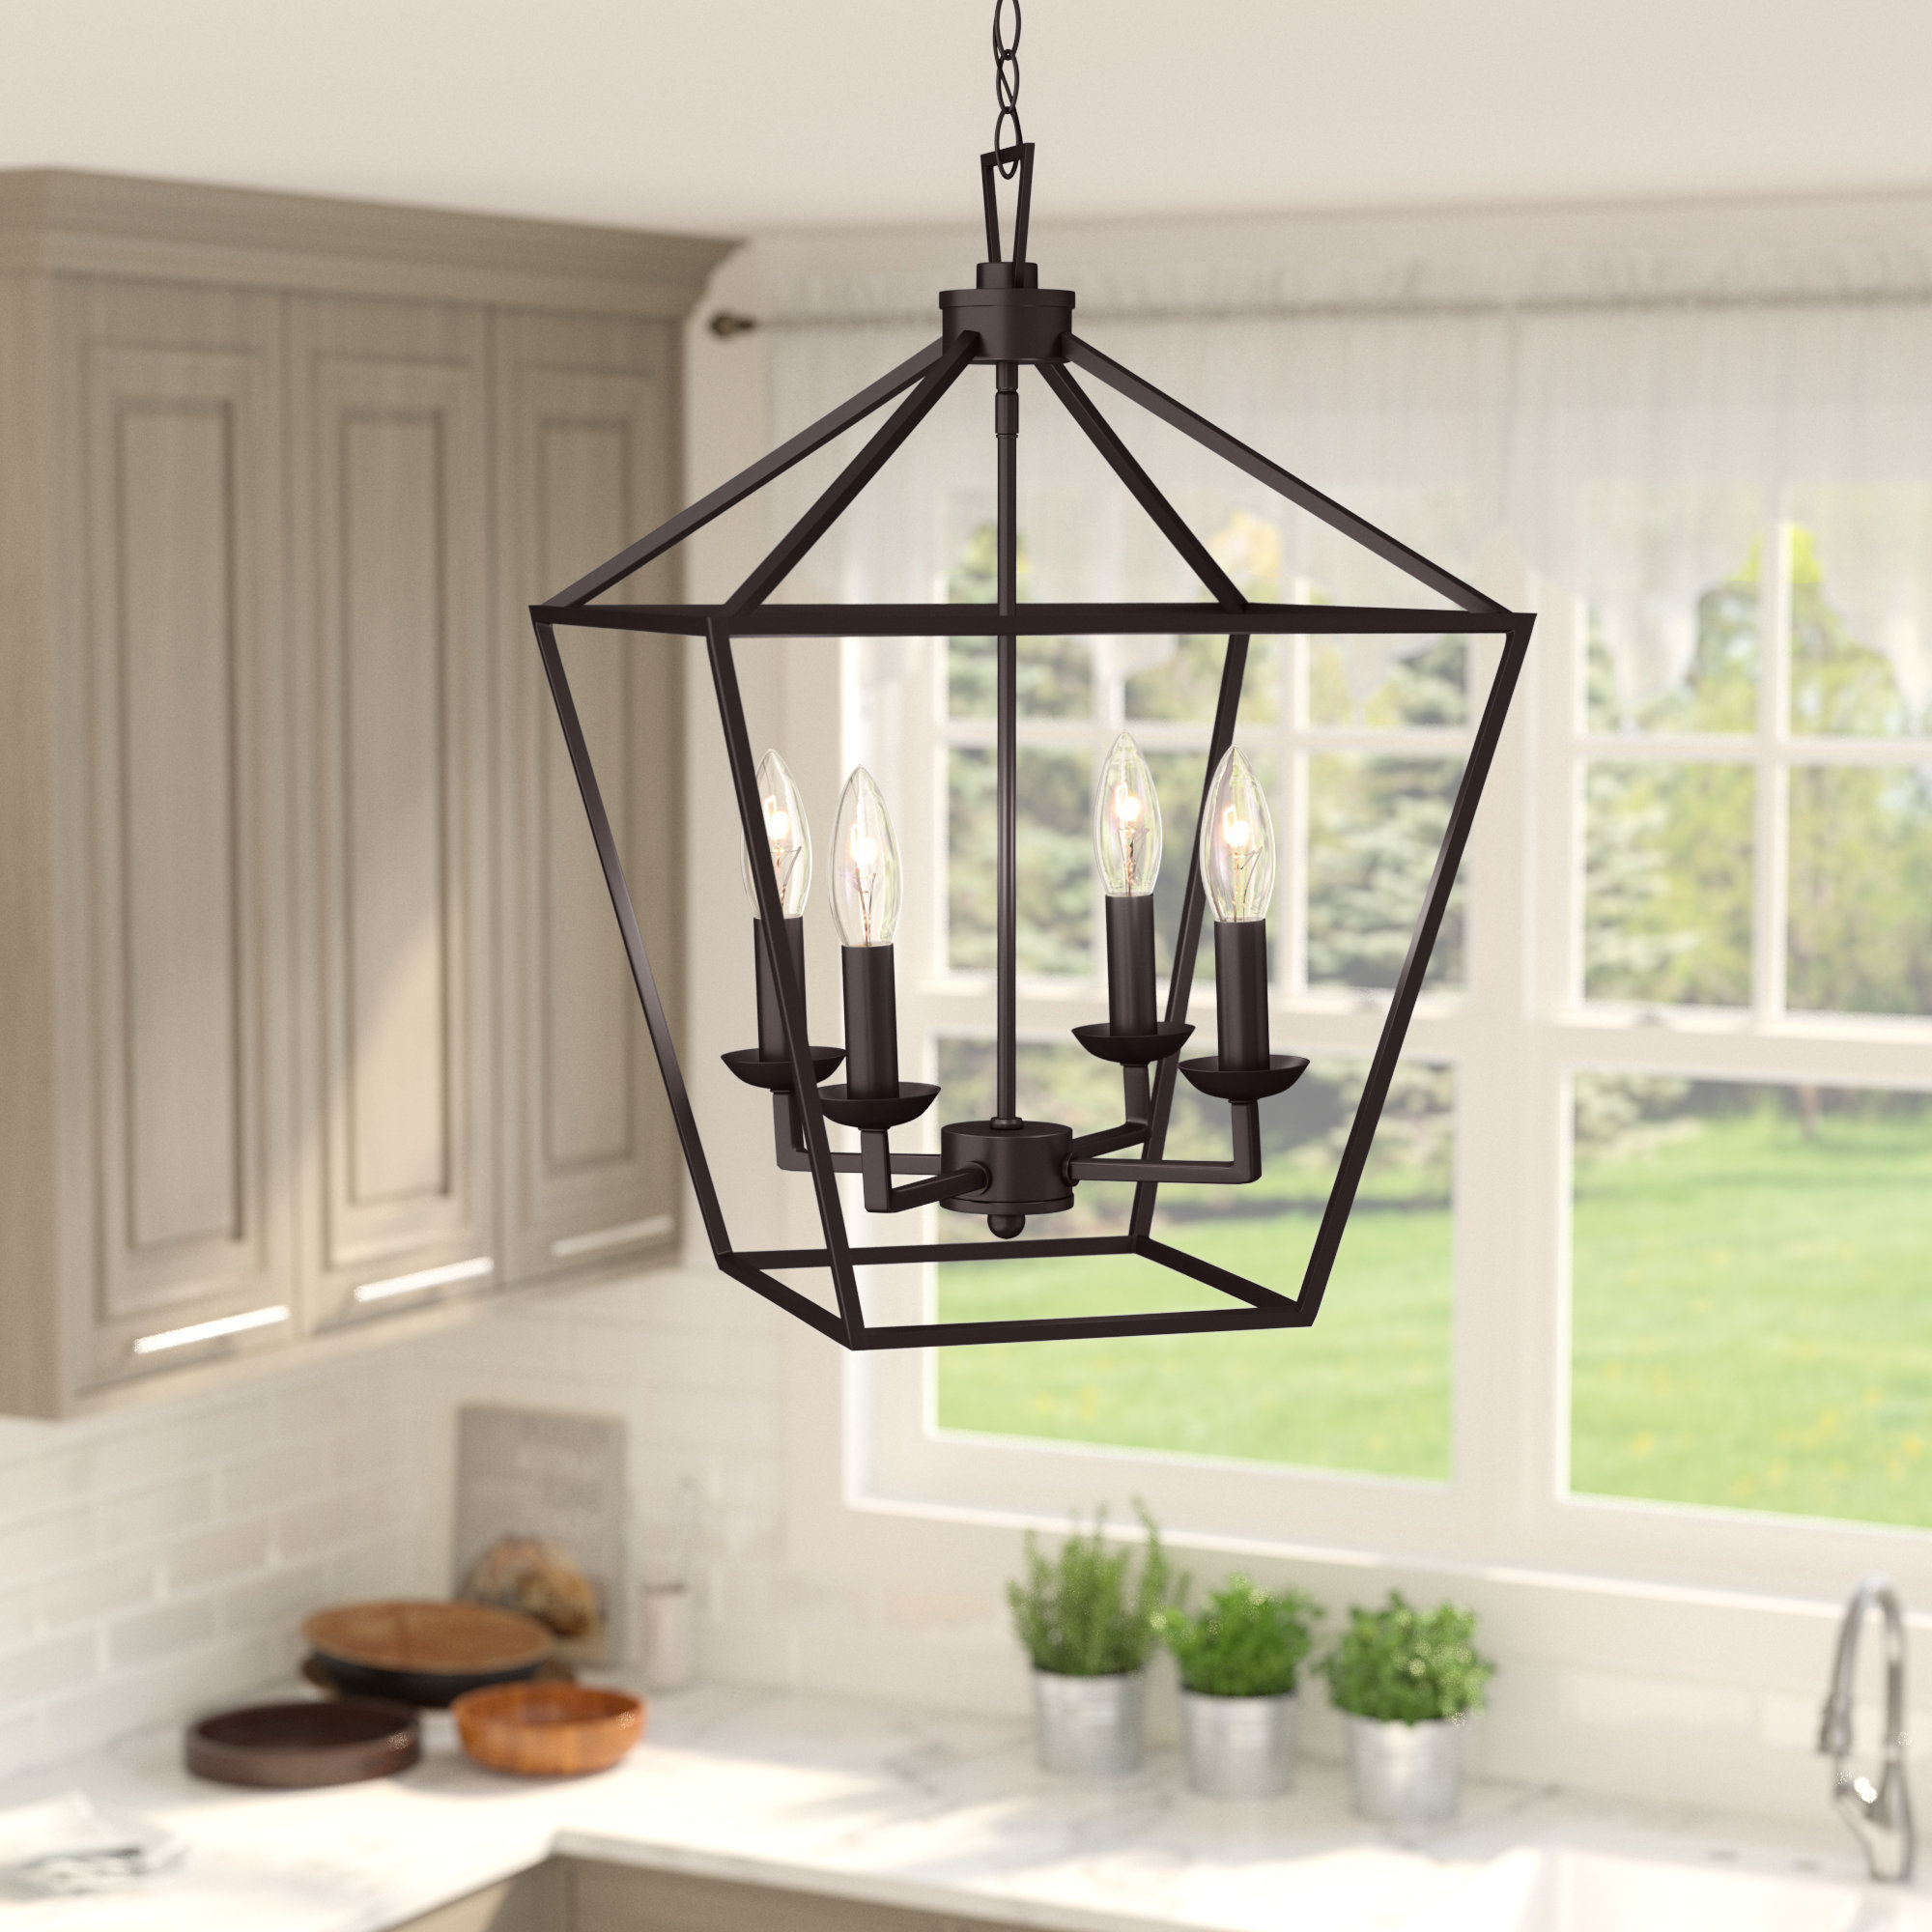 Most Recent Finnick 1 Light Geometric Pendants Inside Carmen 4 Light Lantern Geometric Pendant (View 12 of 20)